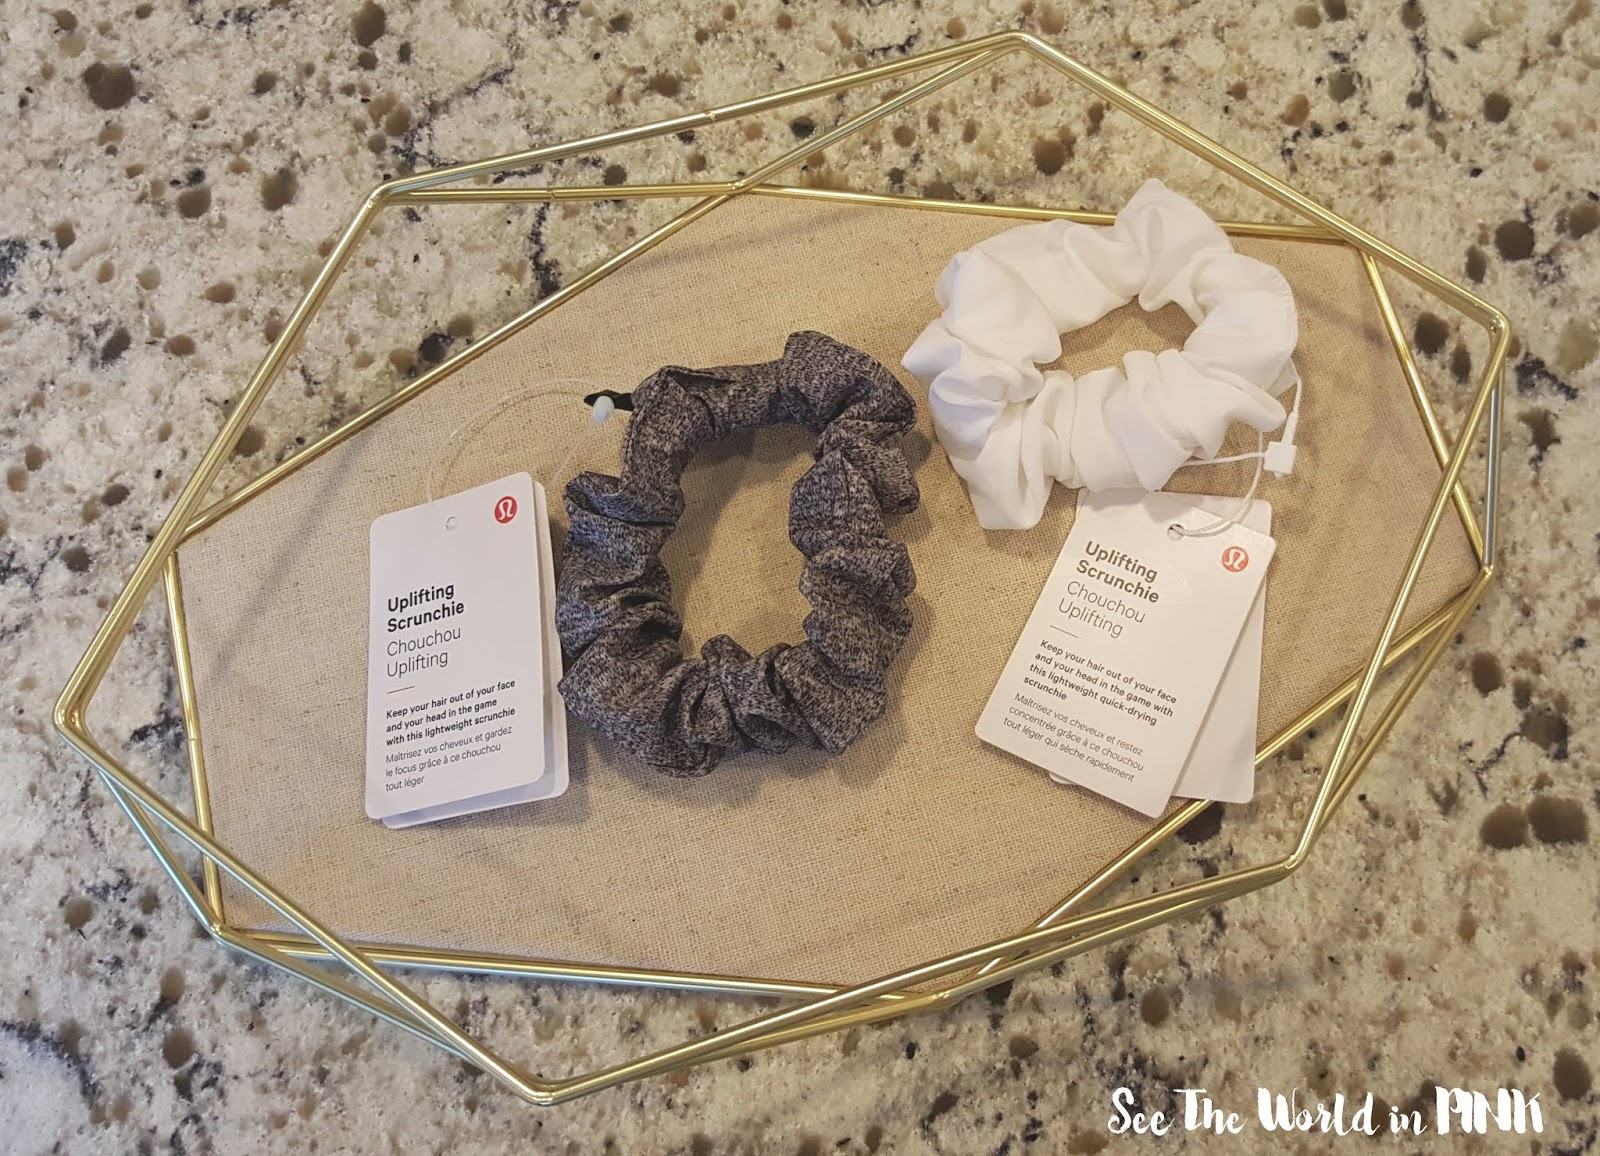 lululemon uplifting scrunchie